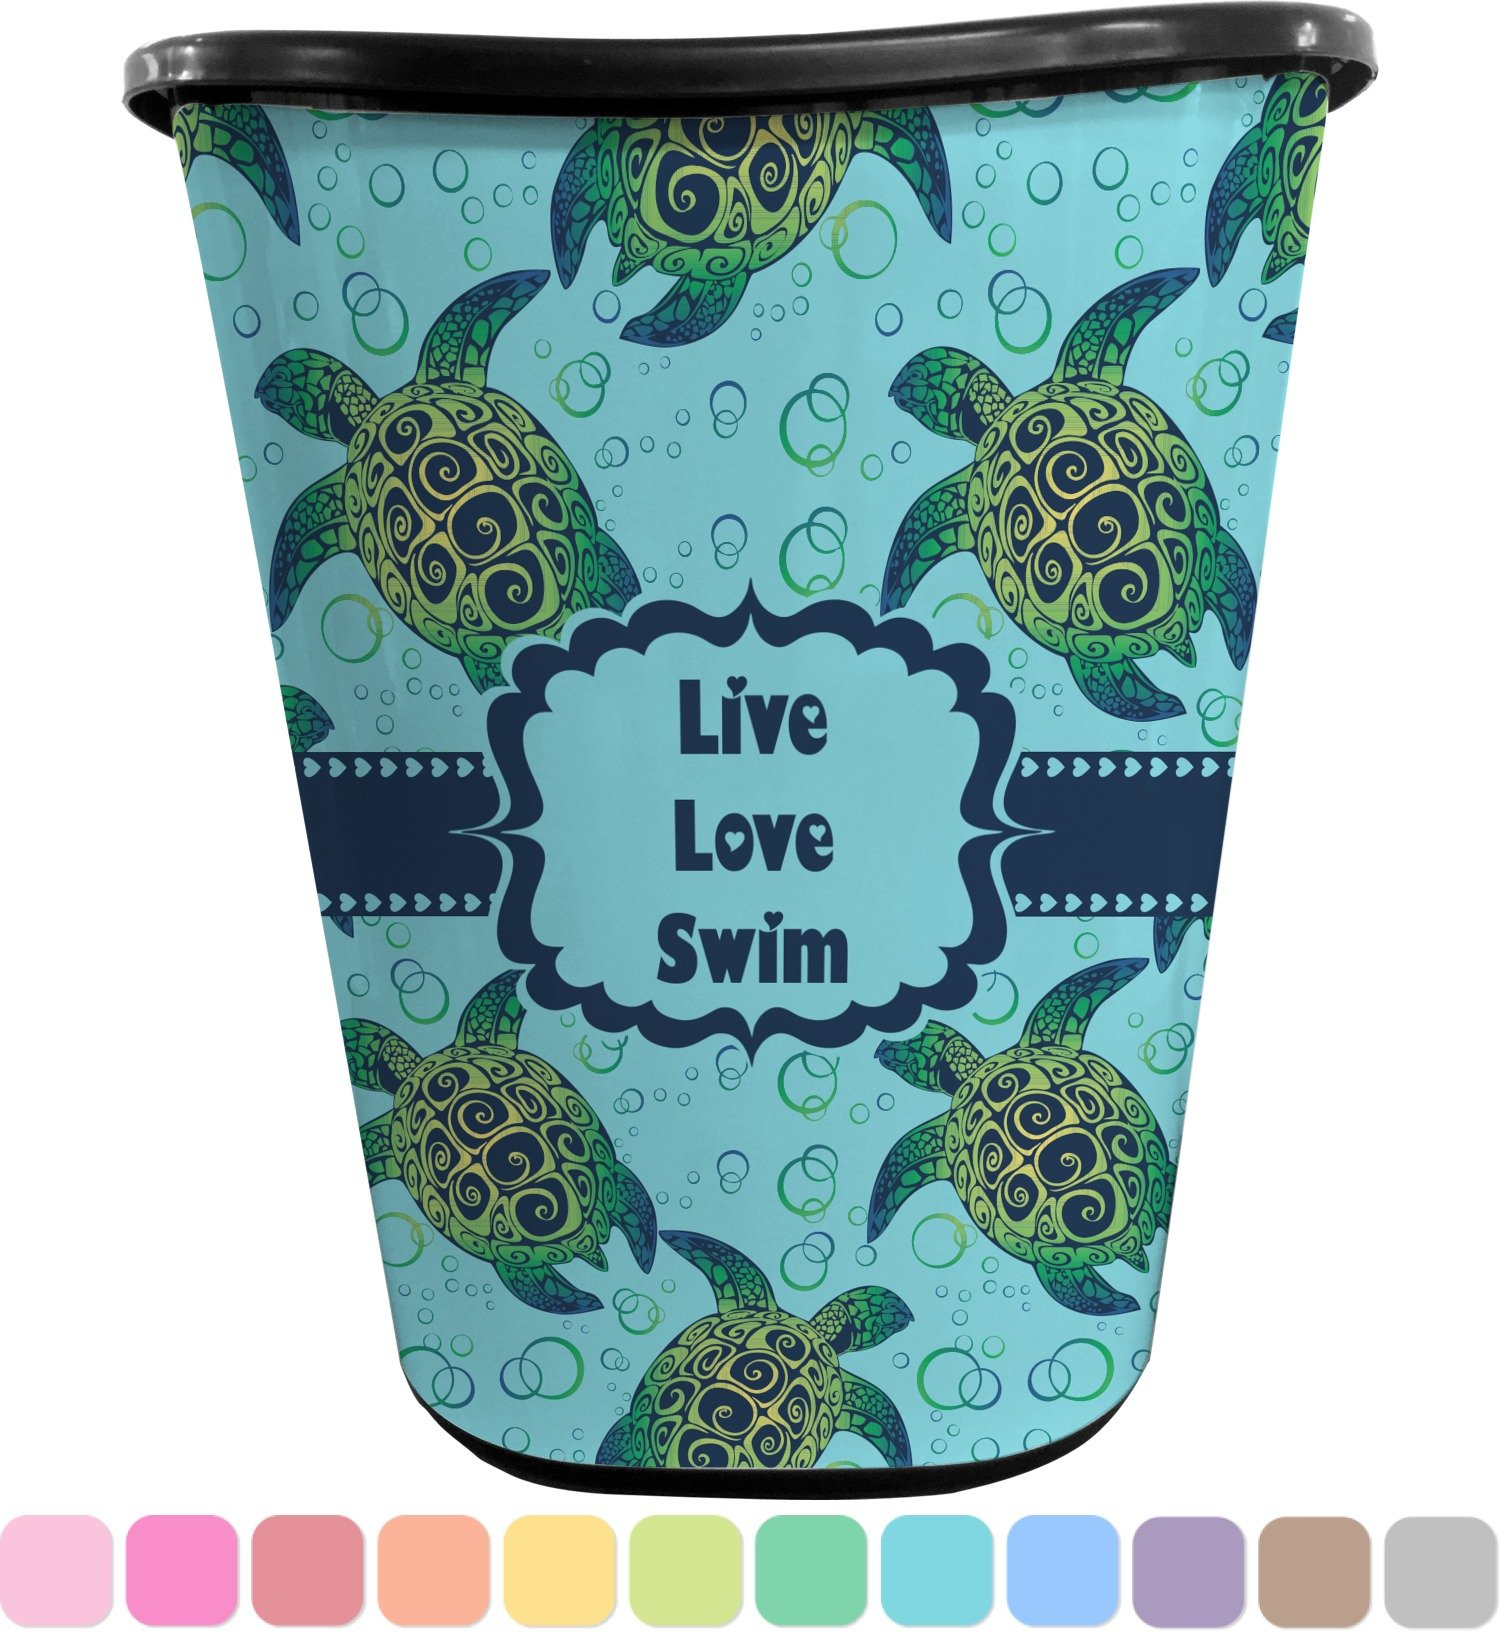 RNK Shops Sea Turtles Waste Basket - Double Sided (Black) (Personalized)